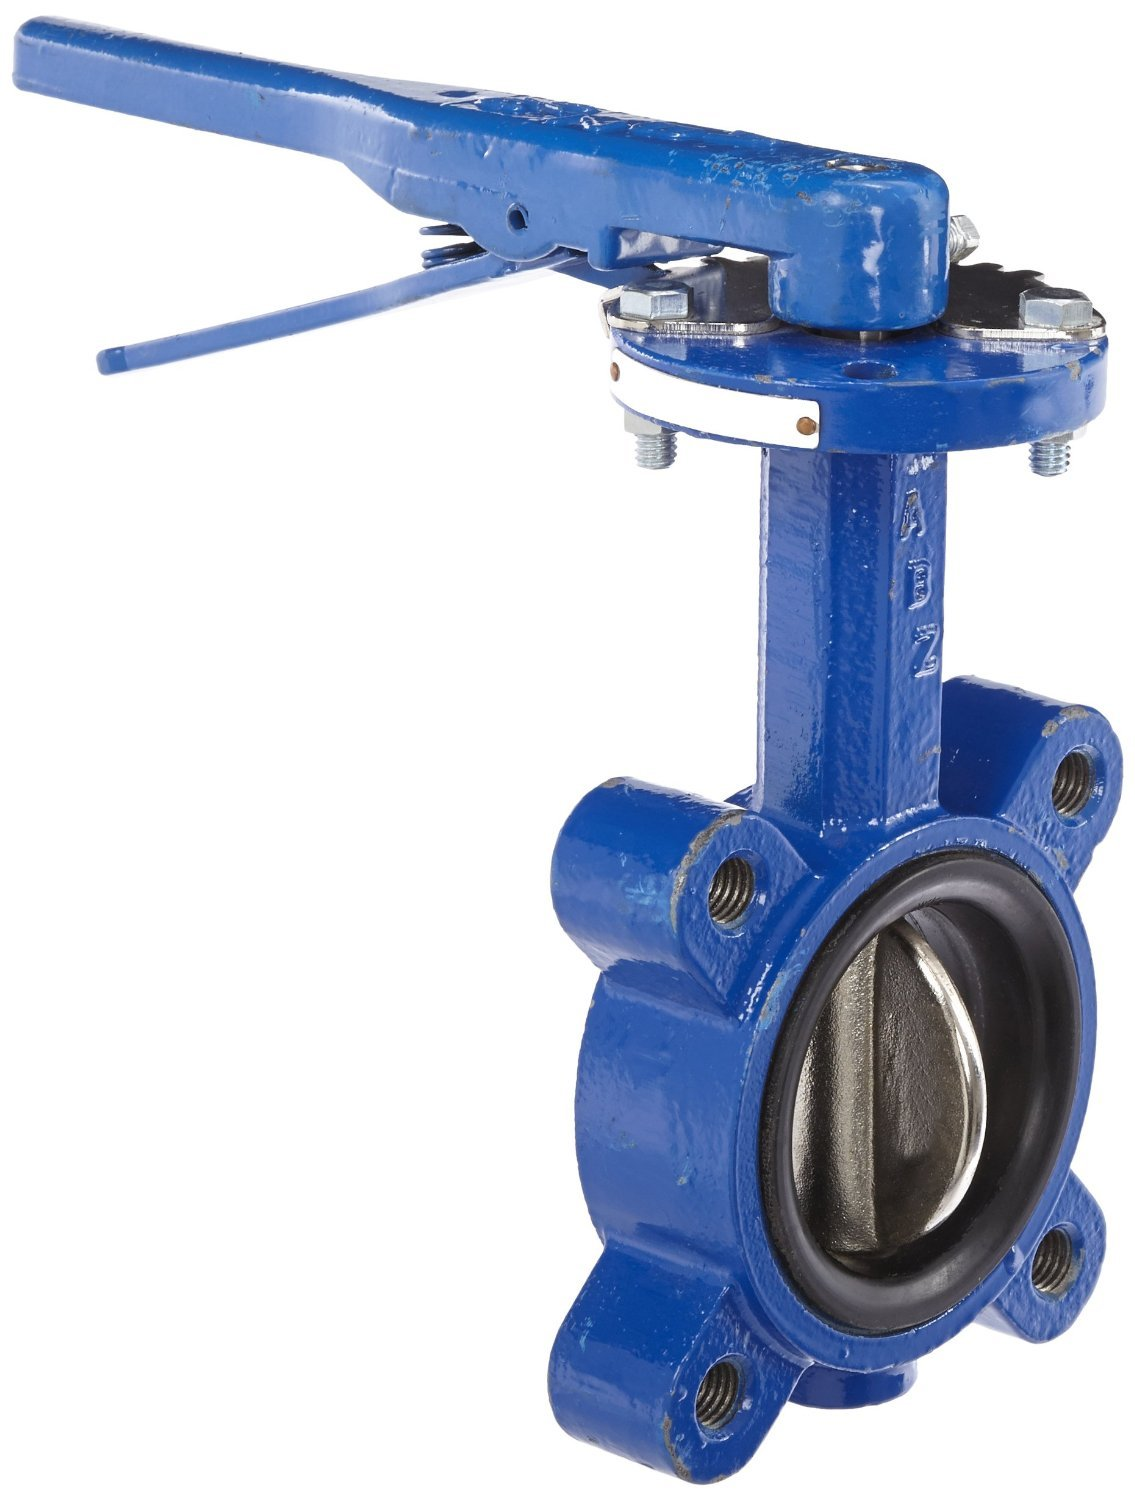 Dixon BFVL300 Ductile Iron Threaded Lug Style Butterfly Valve with Aluminum Bronze Disc and Buna-N liner, 3'' Size, 200 psi Pressure